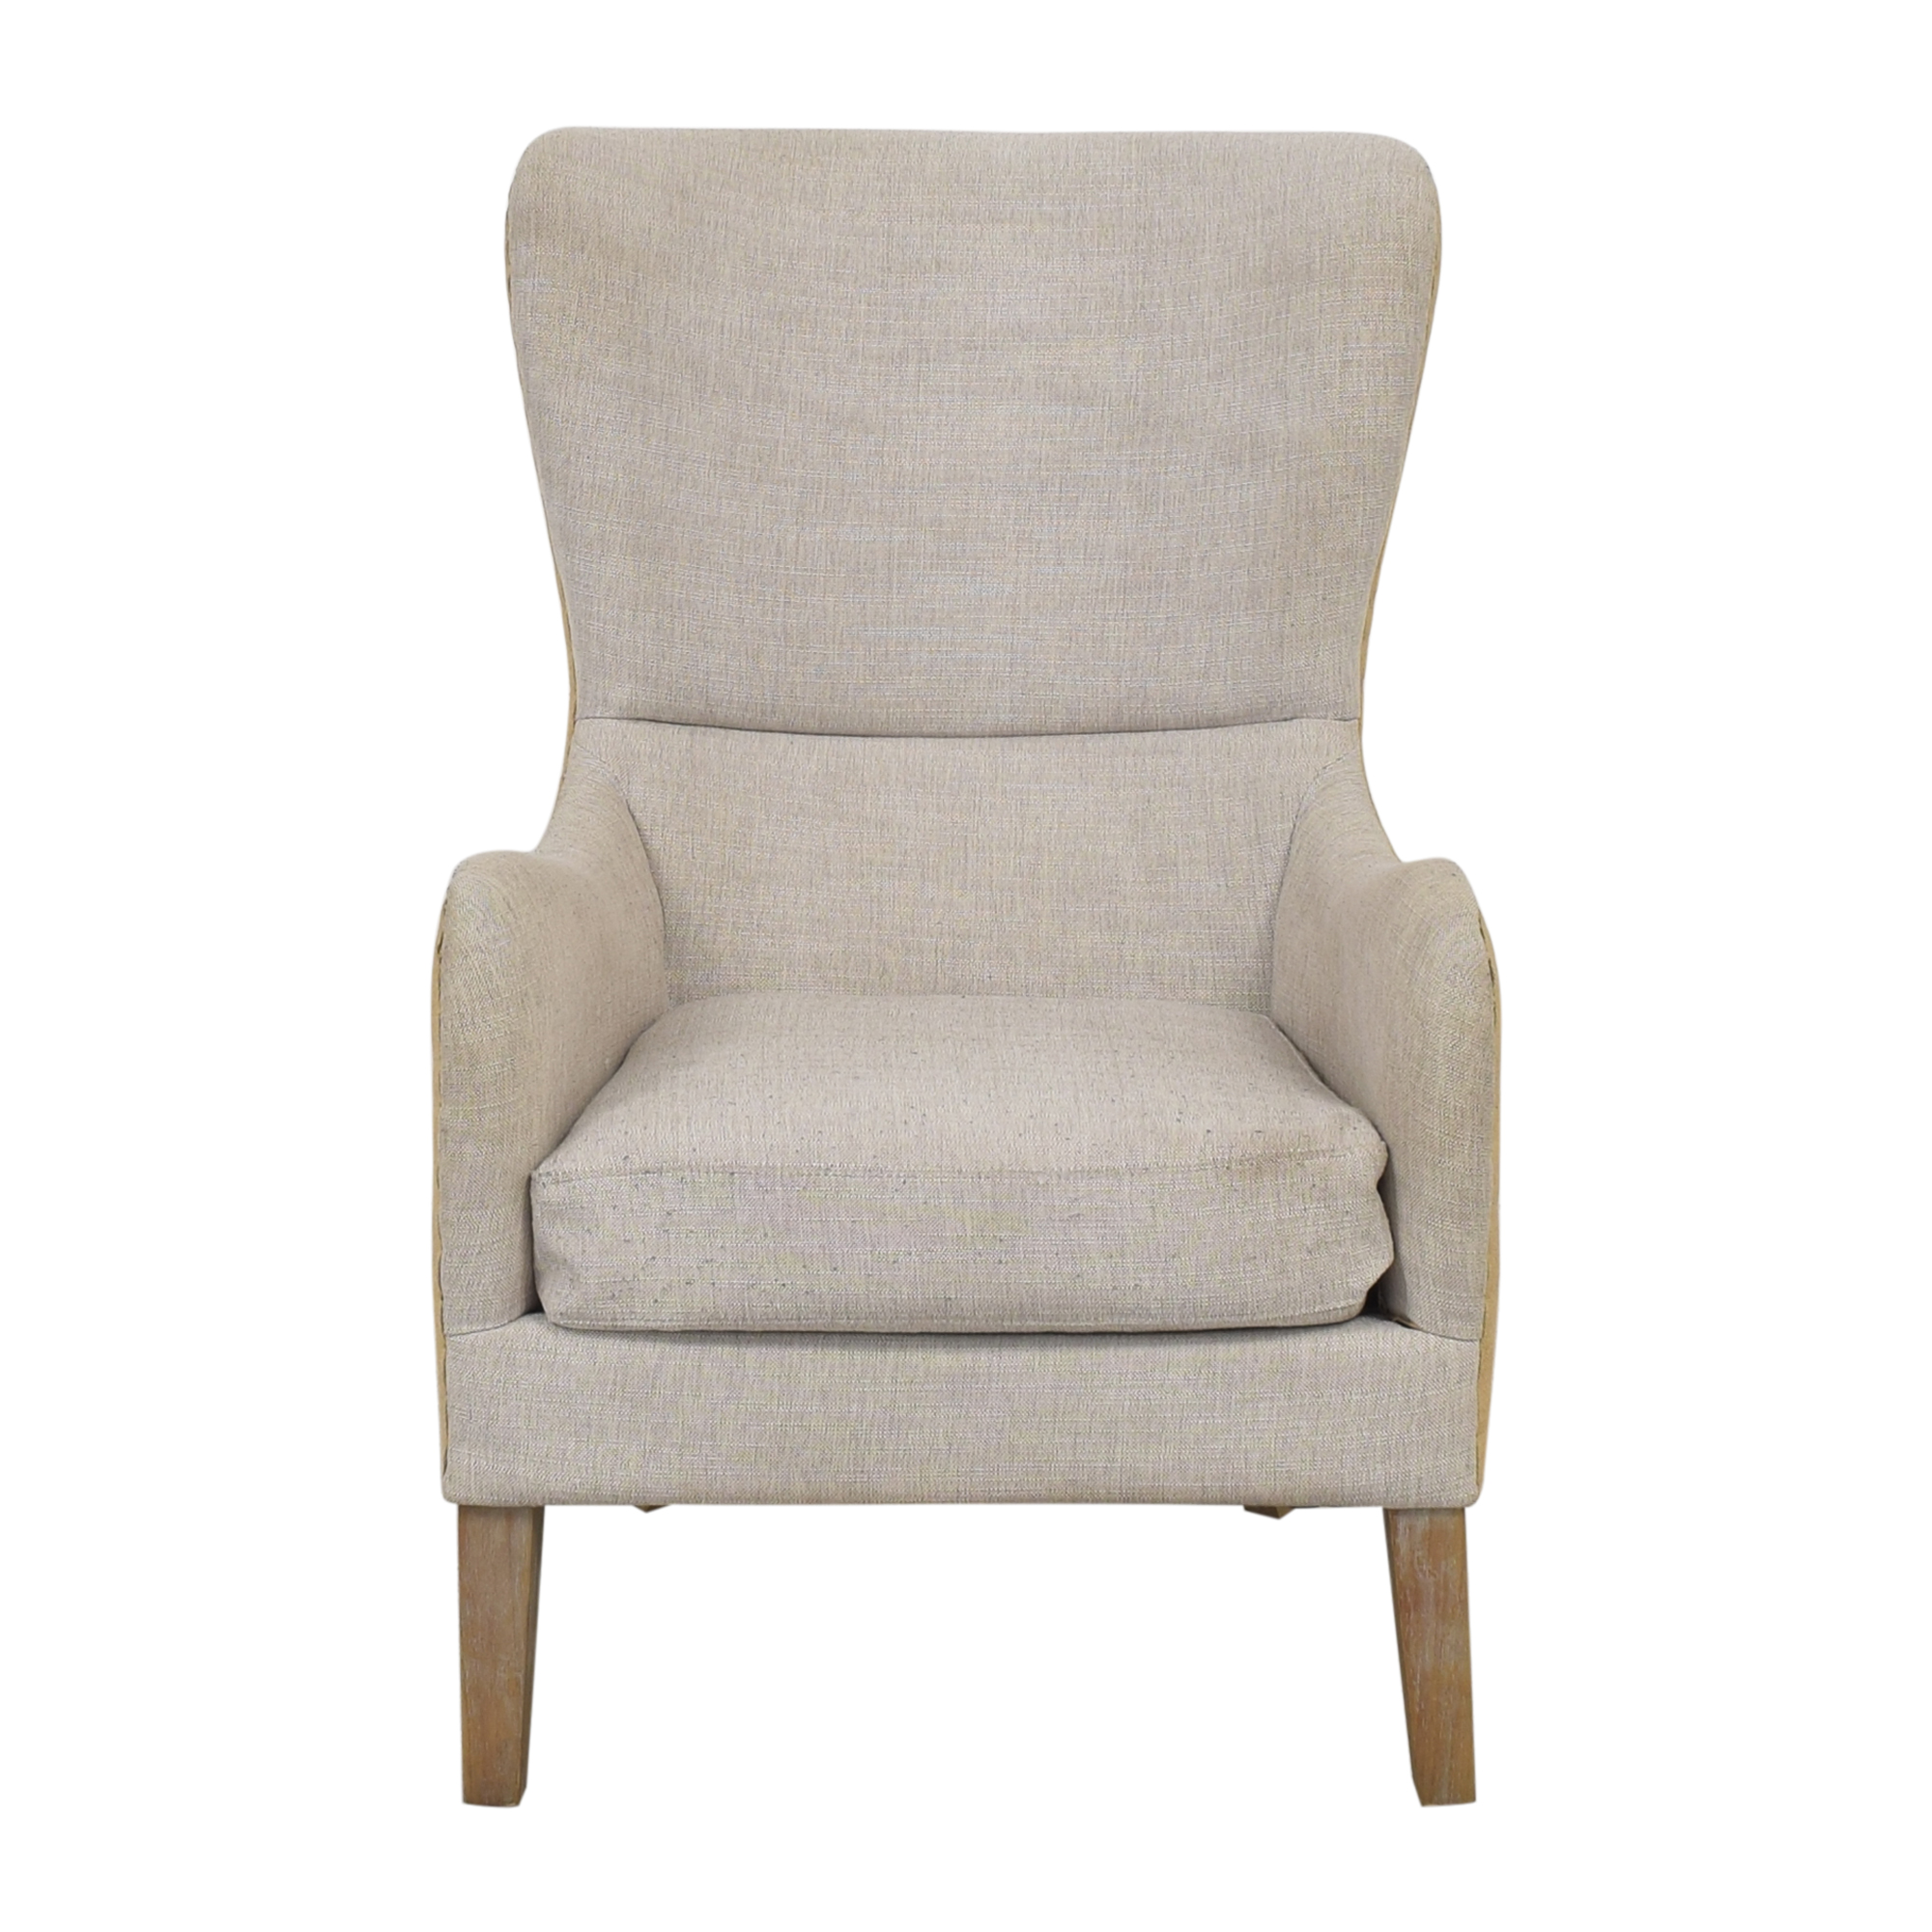 buy Tommy Hilfiger Warner Wingback Chair Tommy Hilfiger